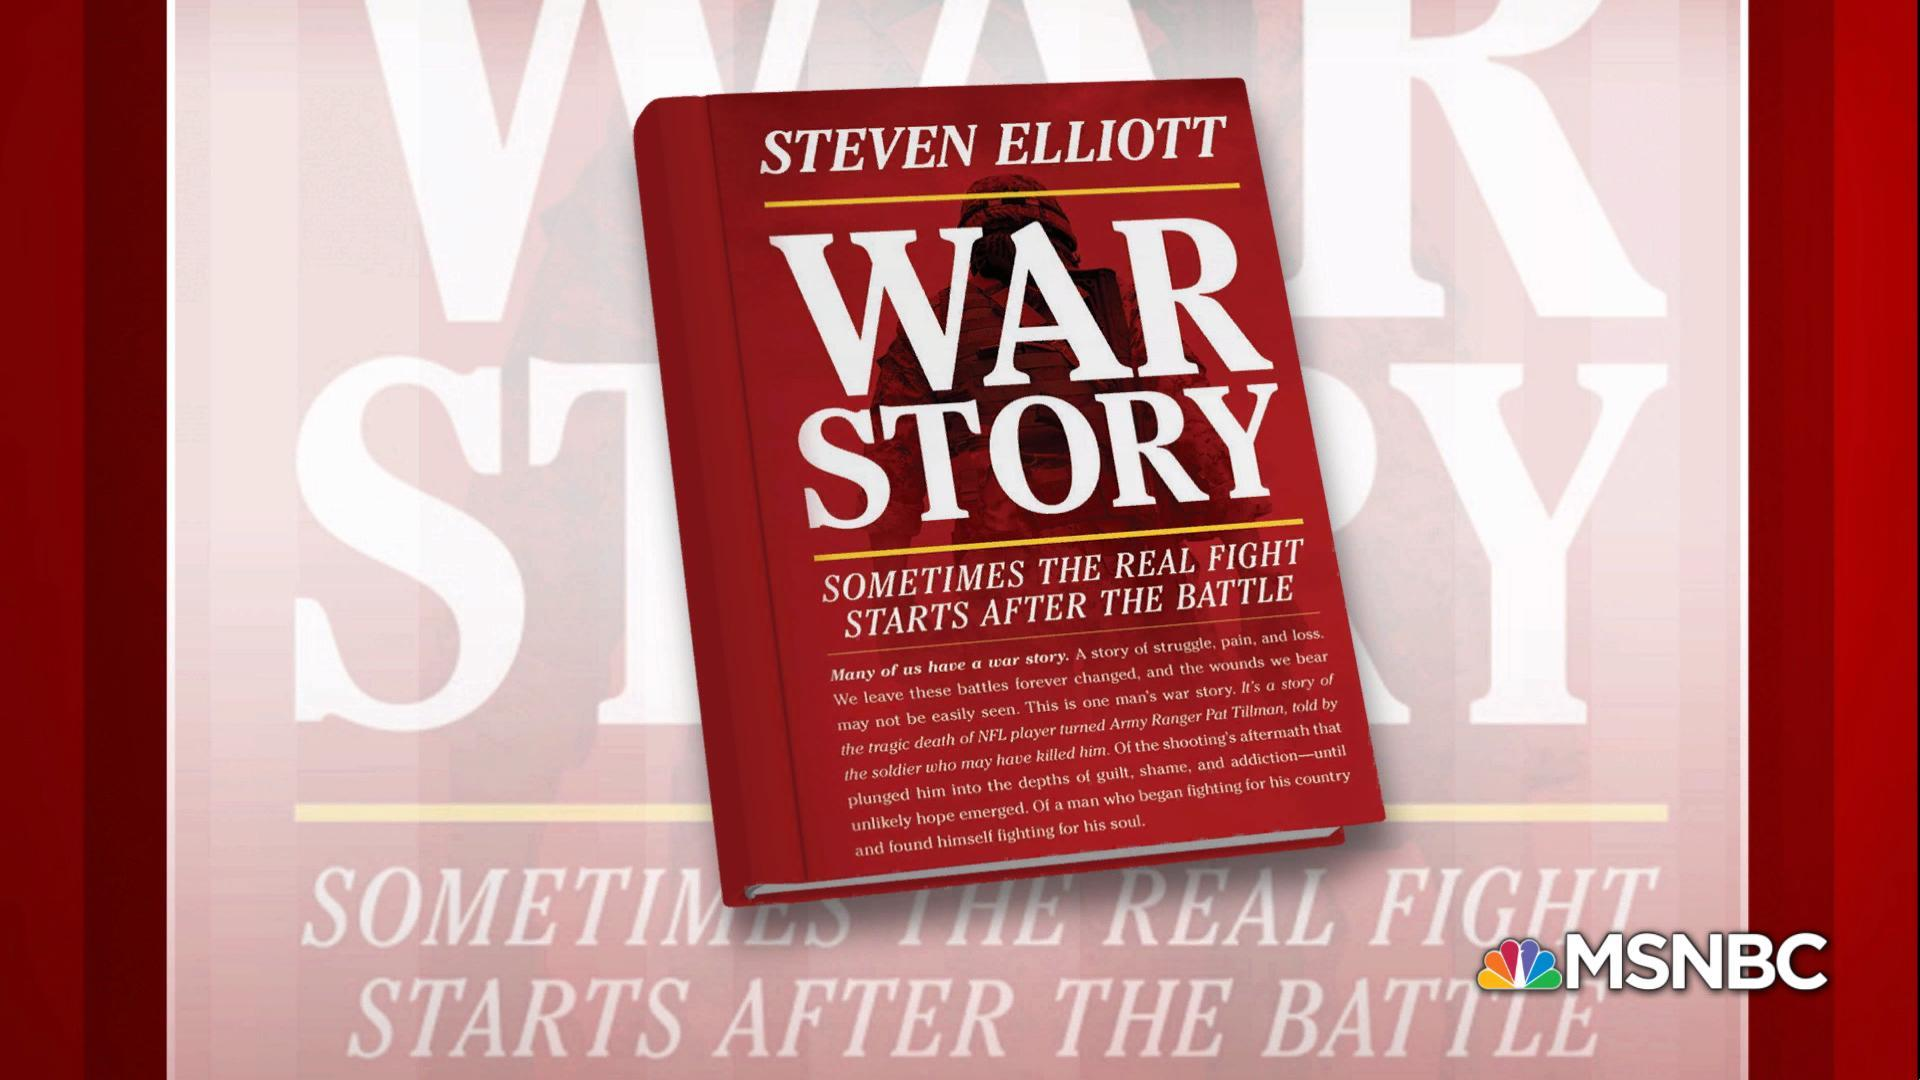 'War Story' looks at life after battle